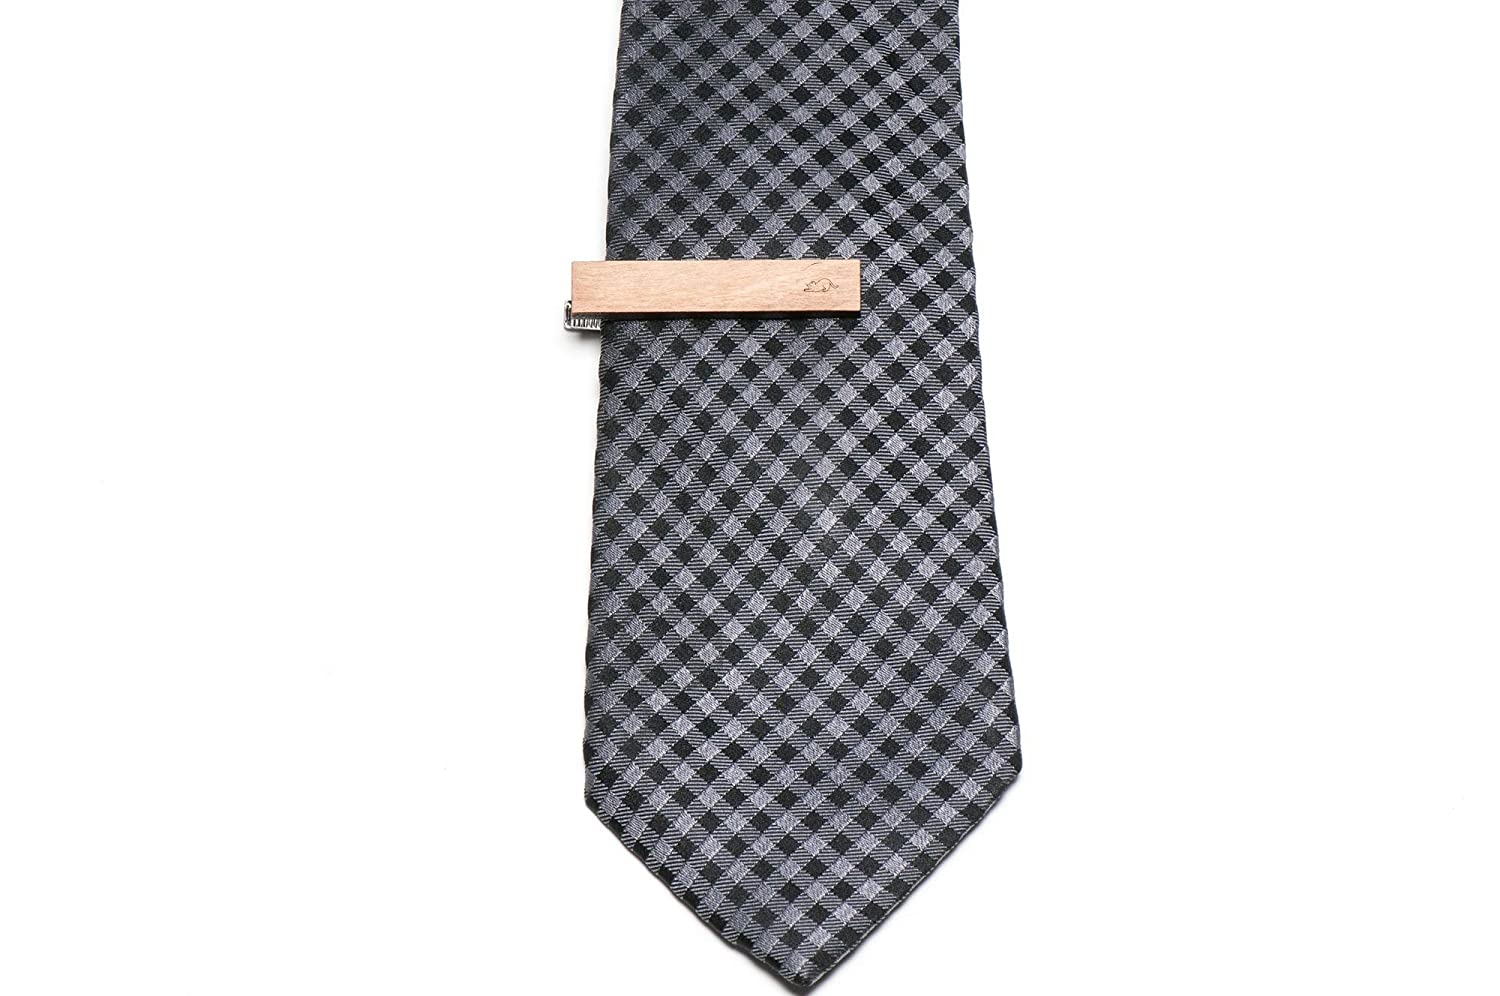 Wooden Accessories Company Wooden Tie Clips with Laser Engraved Yawning Cat Design Cherry Wood Tie Bar Engraved in The USA